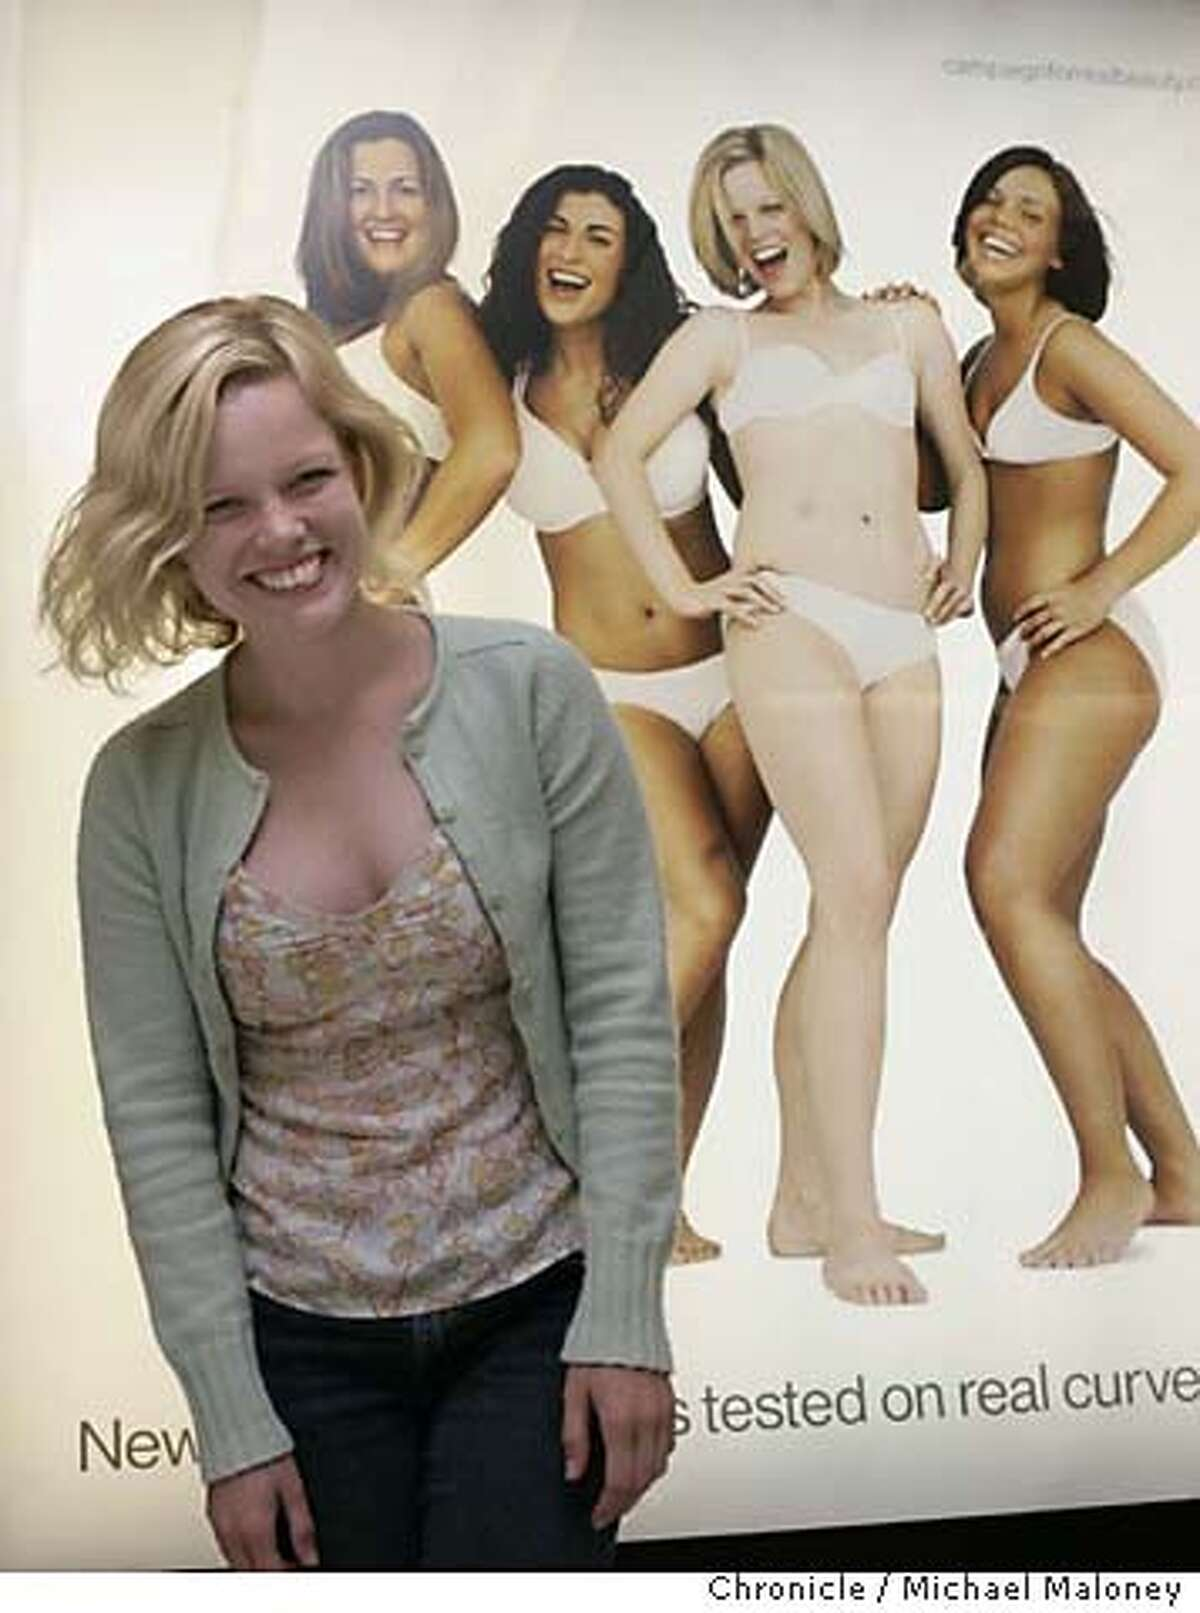 Sigrid Sutter, one of the women currently posing in her white underwear on billboards all over town for the DOVE real woman campaign lives and works here in SF. She poses in front of a billboard in the Powell Street BART station. Photo by Michael Maloney / San Francisco Chronicle